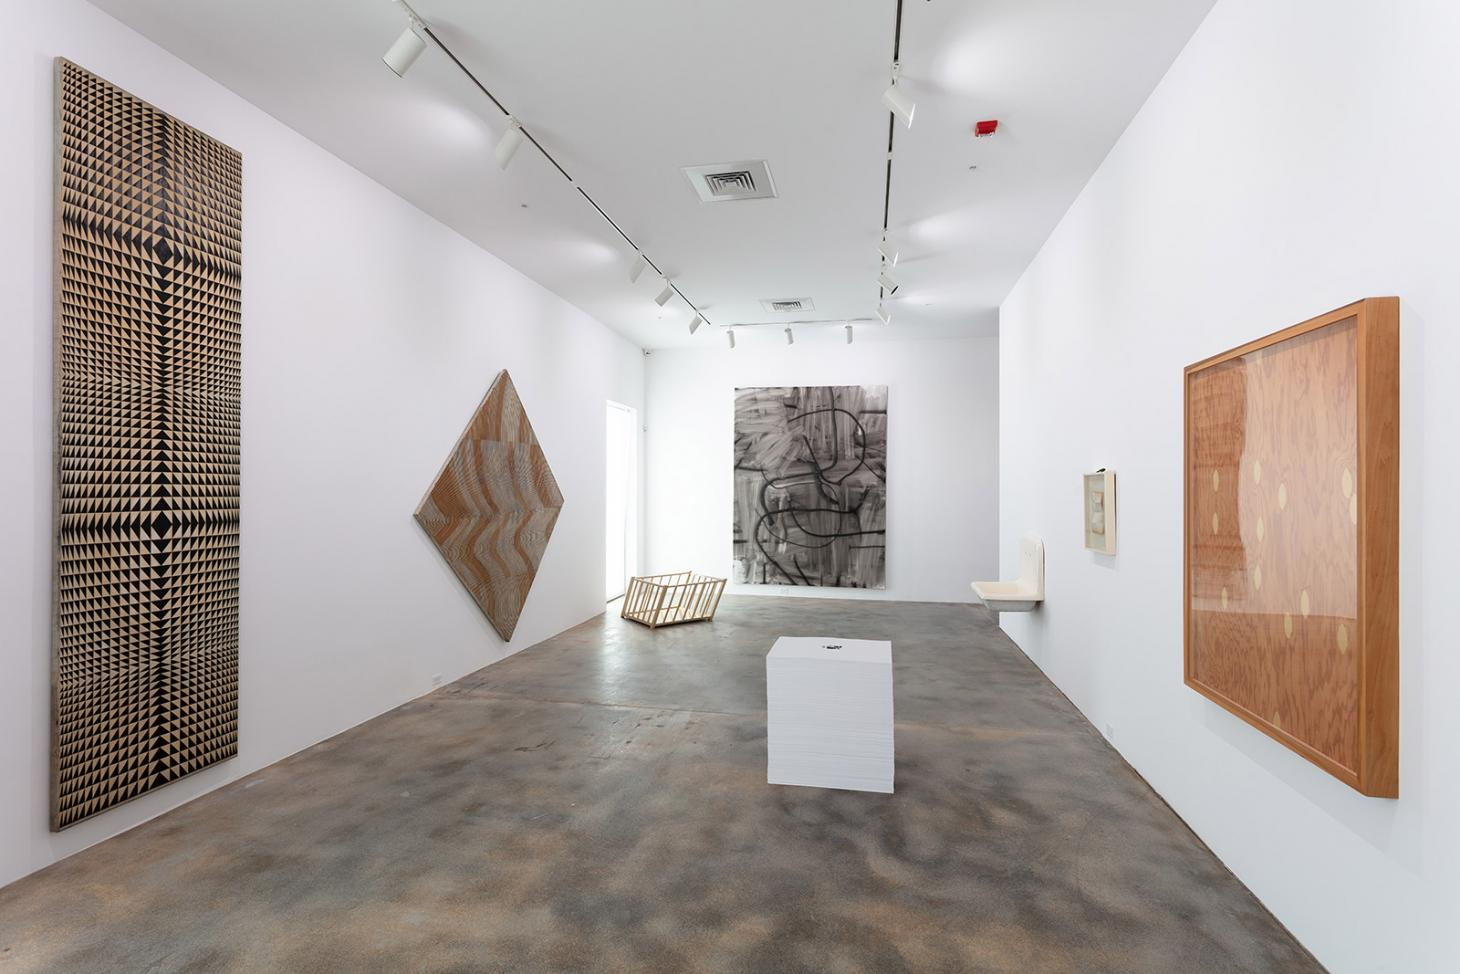 Installation view of inaugurating exhibition at Rubell Museum, by Selldorf Architects